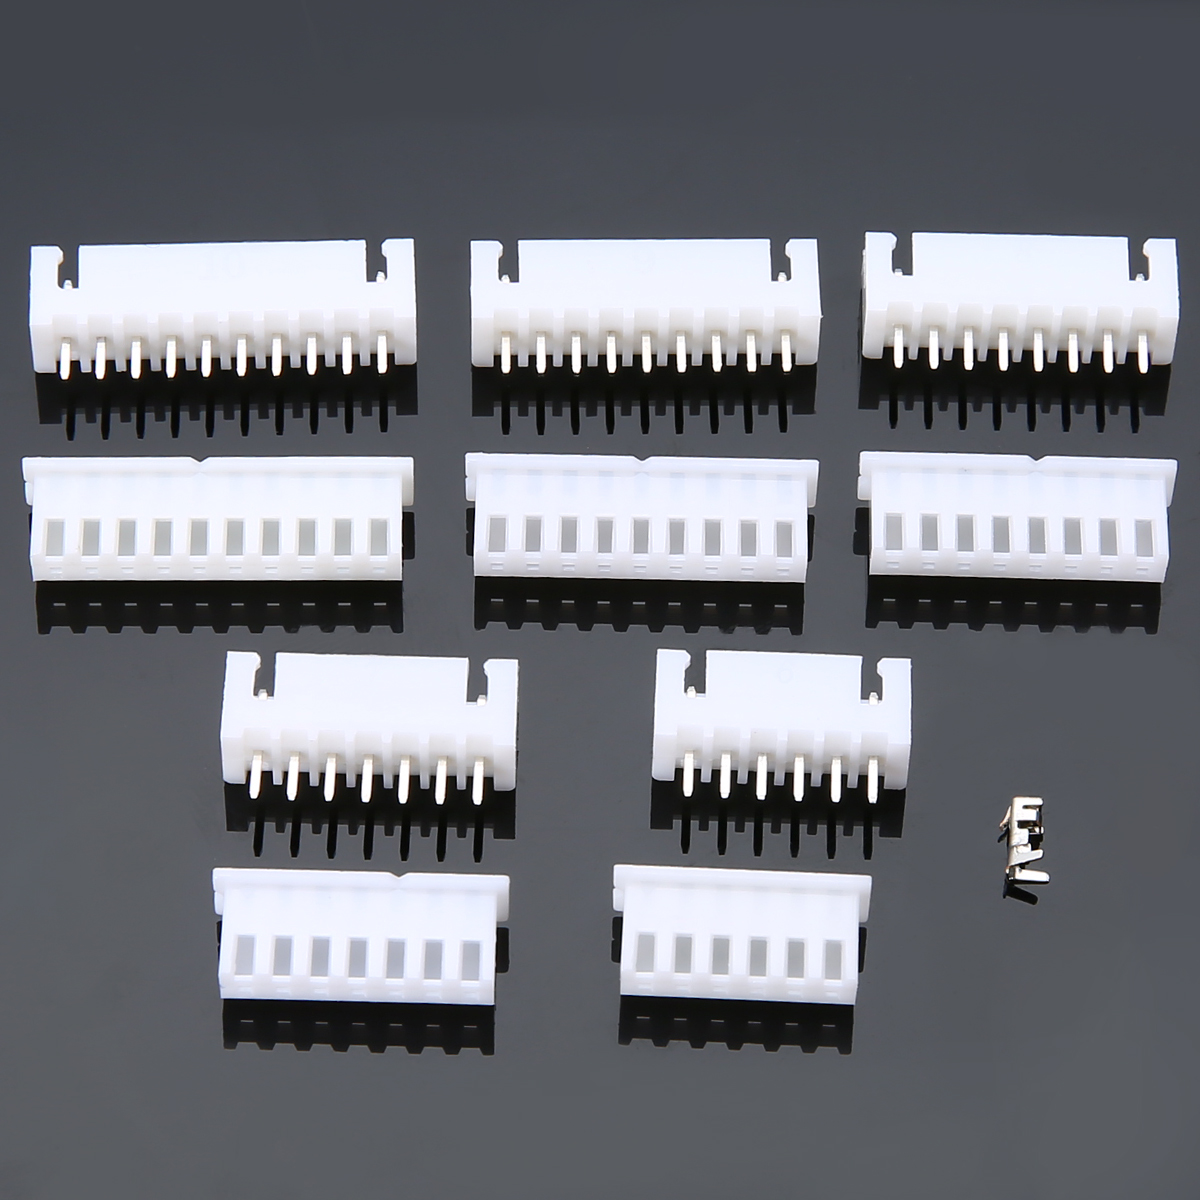 все цены на  25 Set JST-XH 2.54mm Pitch Terminal Housing PCB Header Wire Cable Connectors 6P/7P/8P/9P/10 Pin Way  онлайн